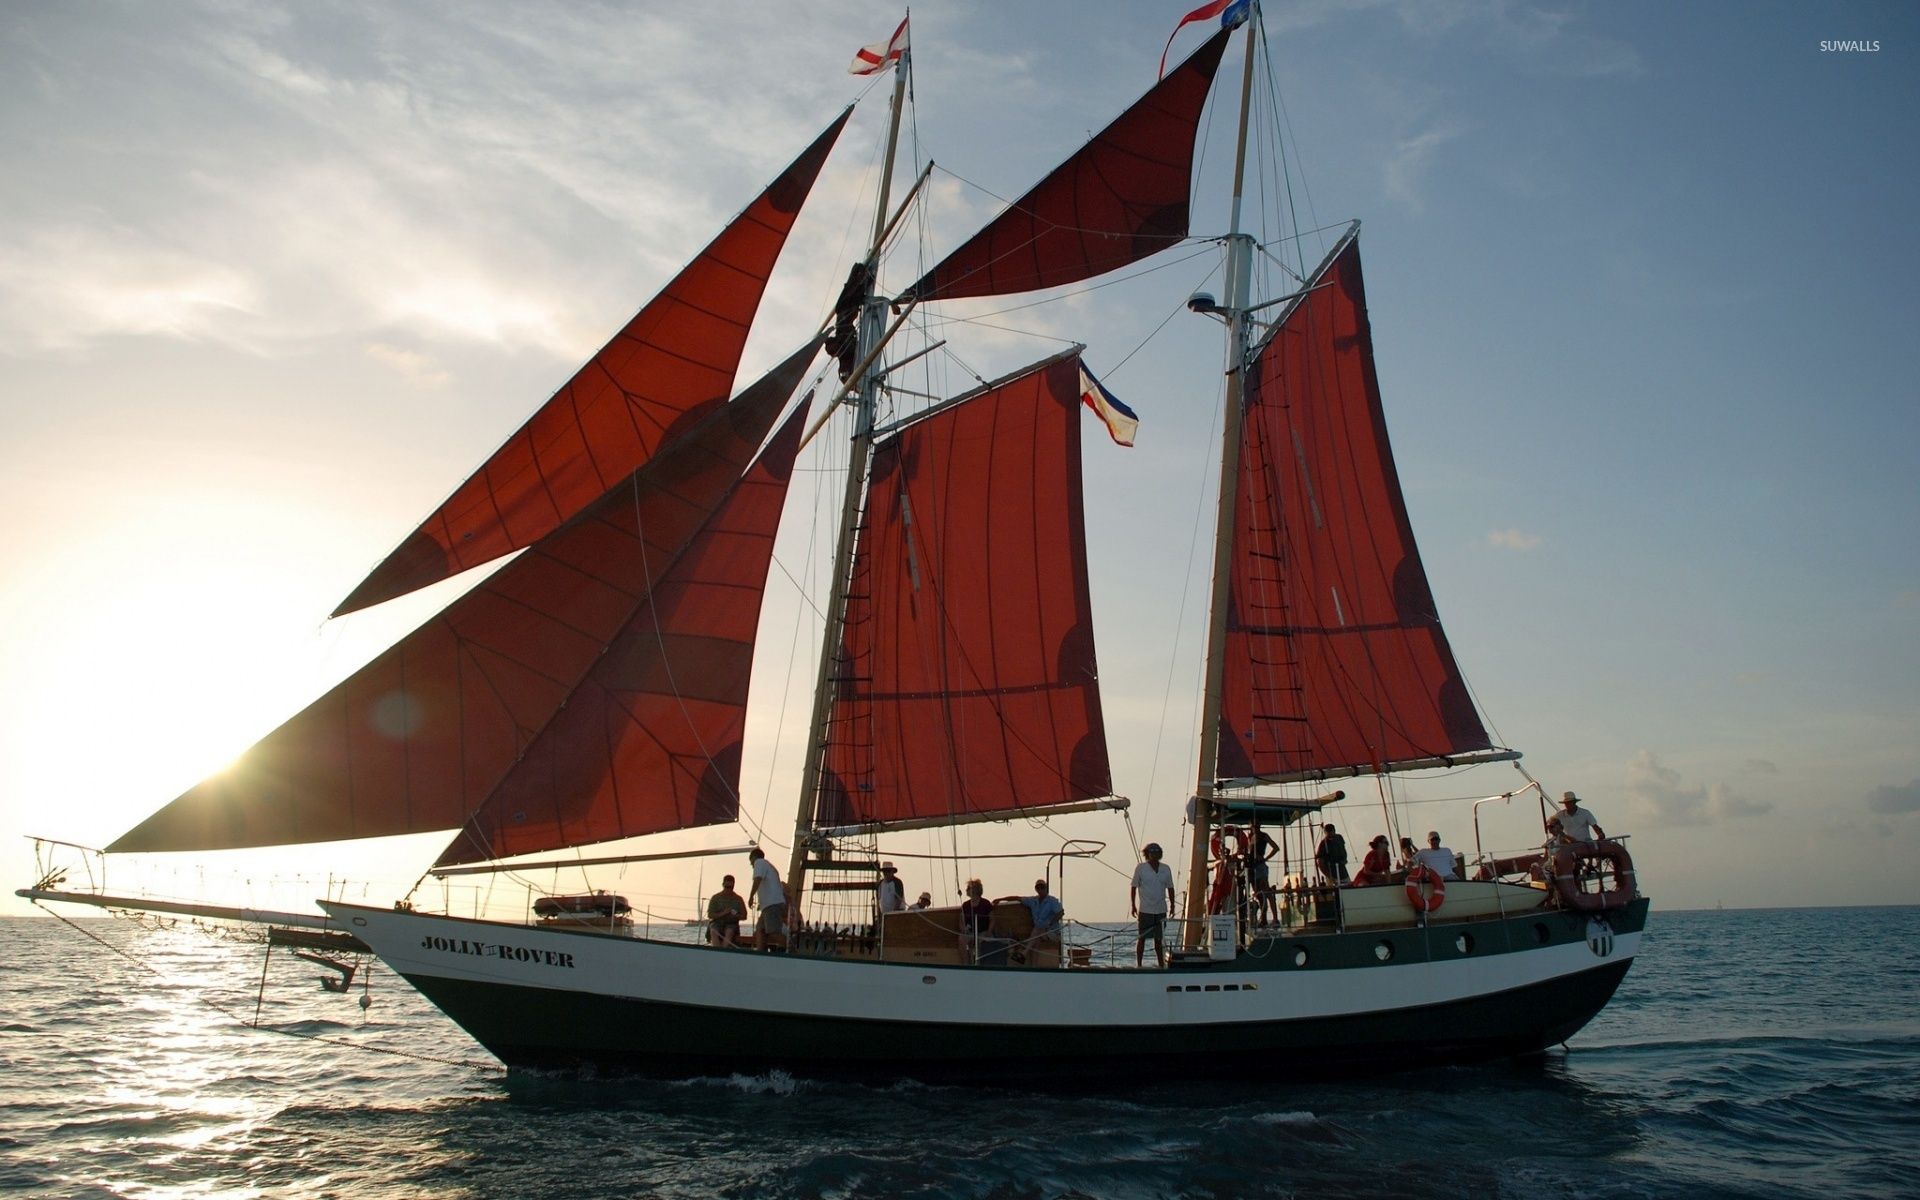 Schooner Jolly II Rover wallpaper